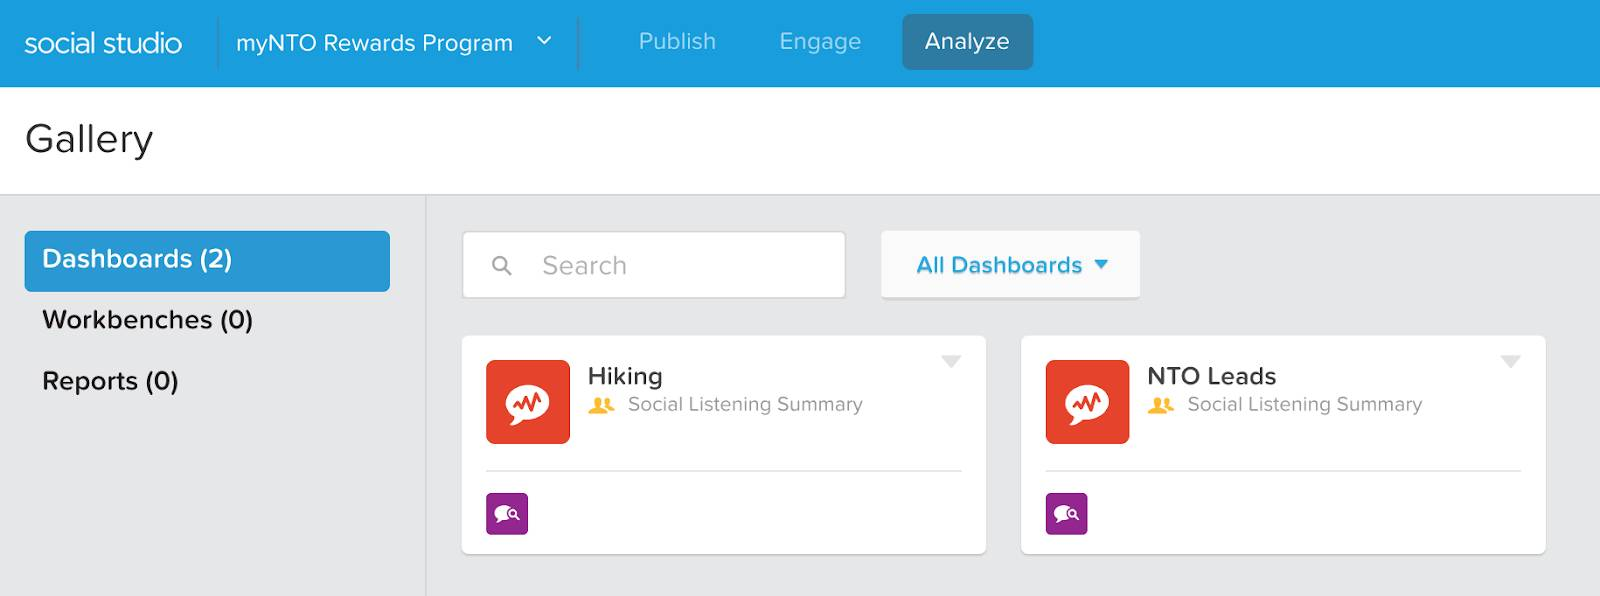 Analyze dashboard view in Social Studio with two dashboards: Hiking and NTO Leads.